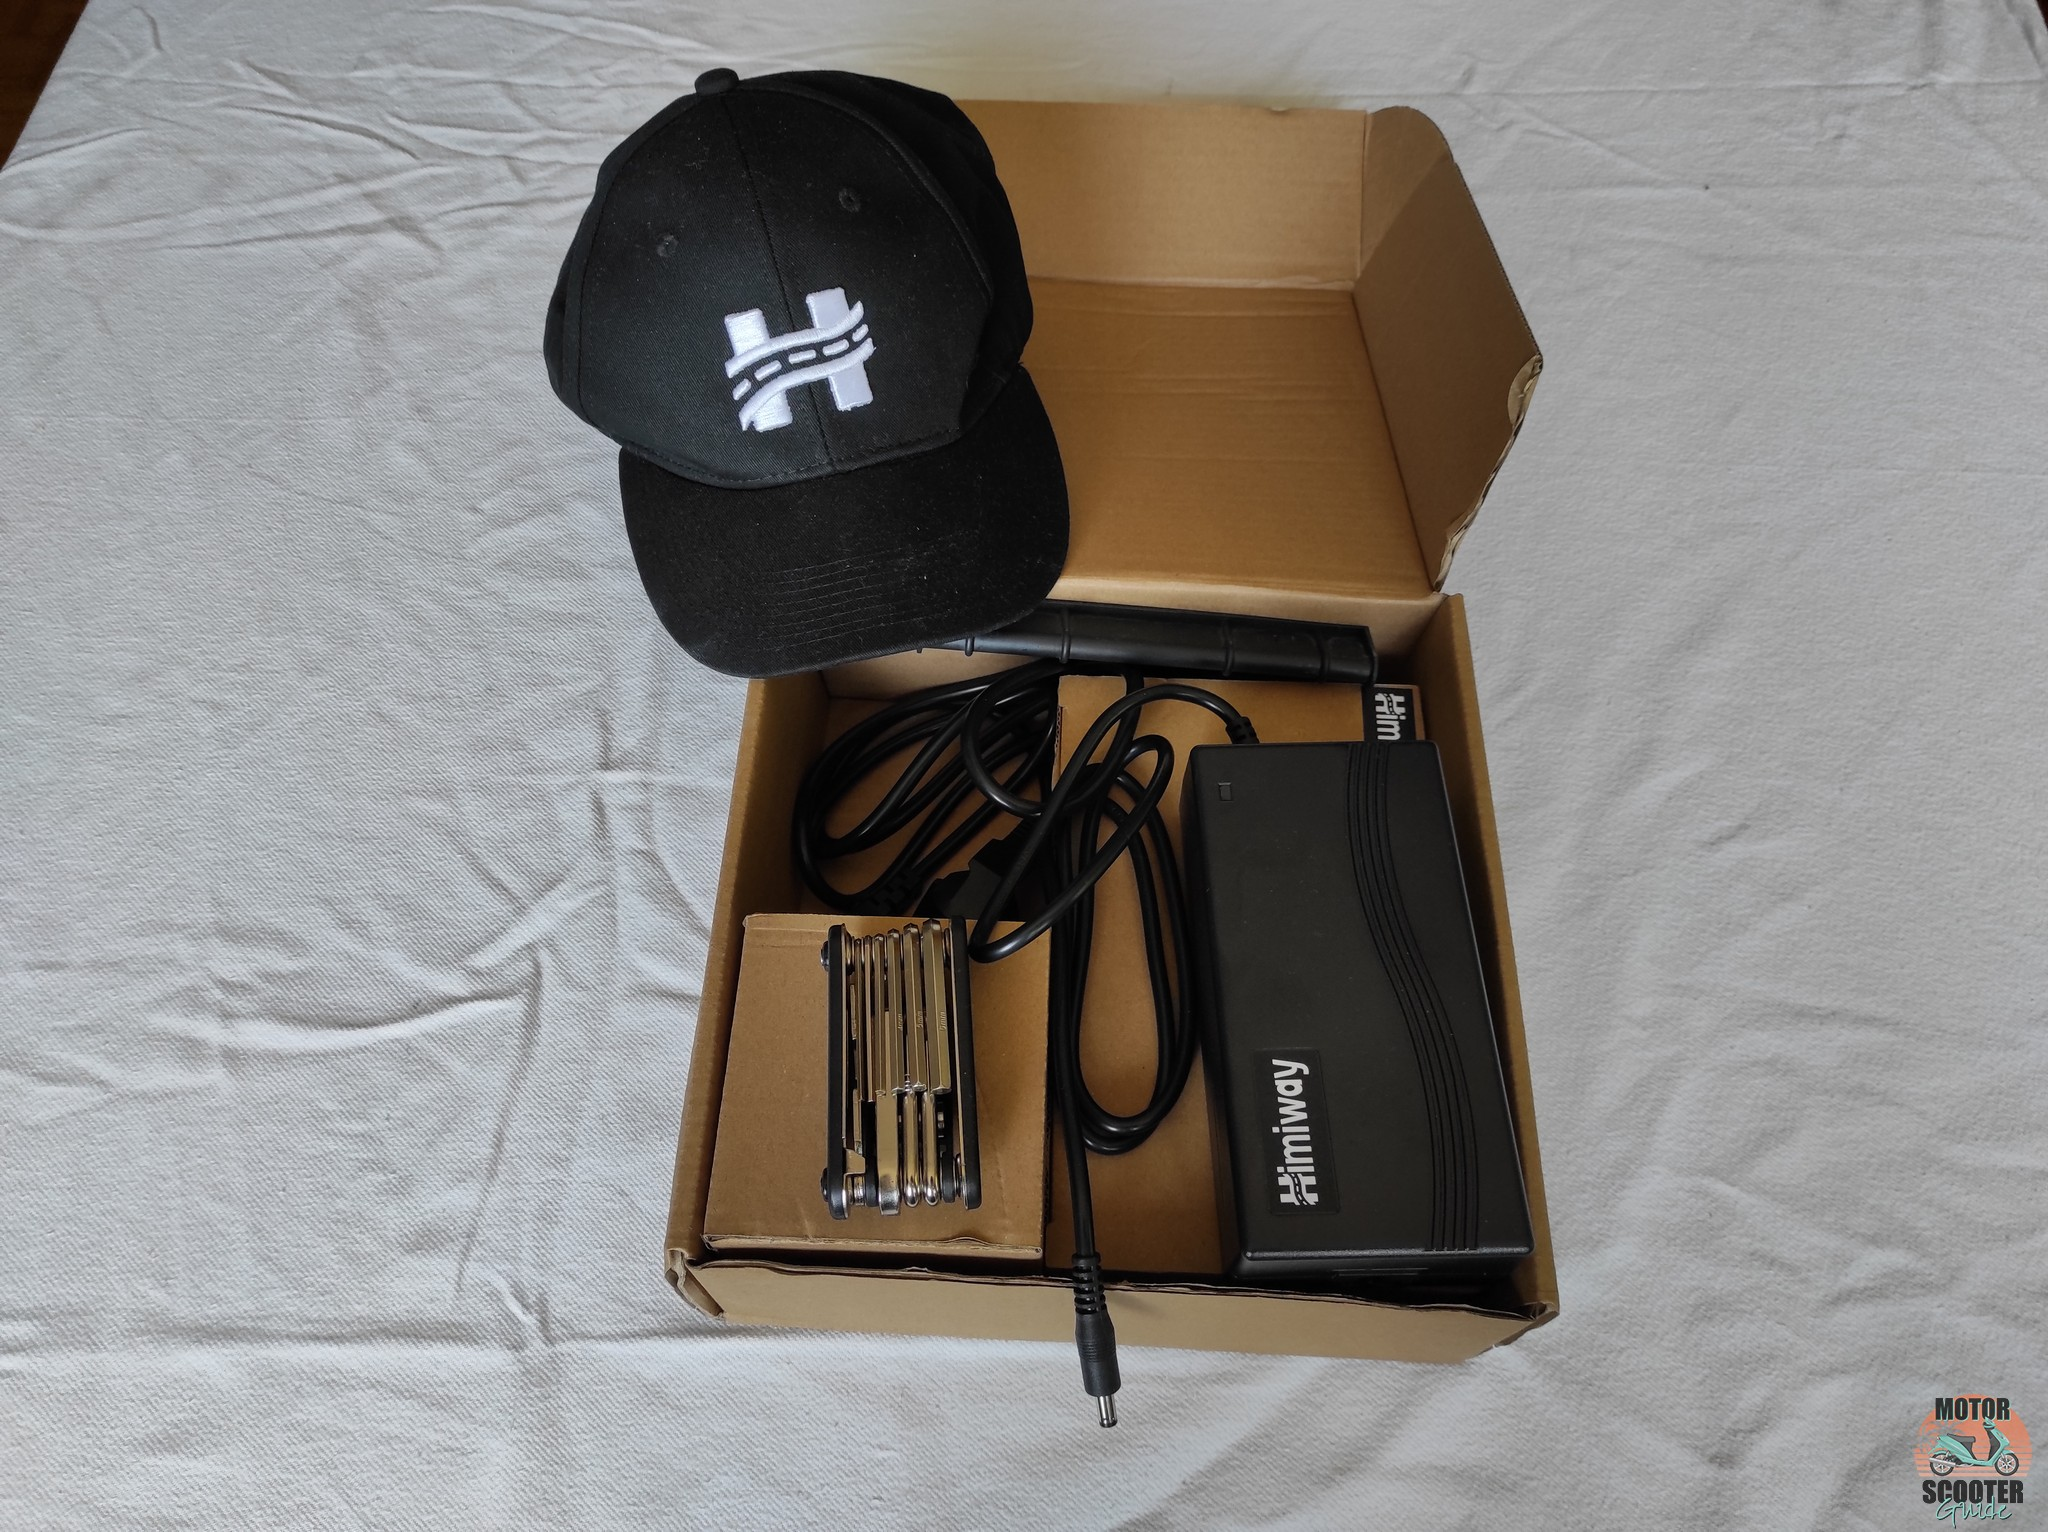 Extra box contents that came with the Himiway Cruiser